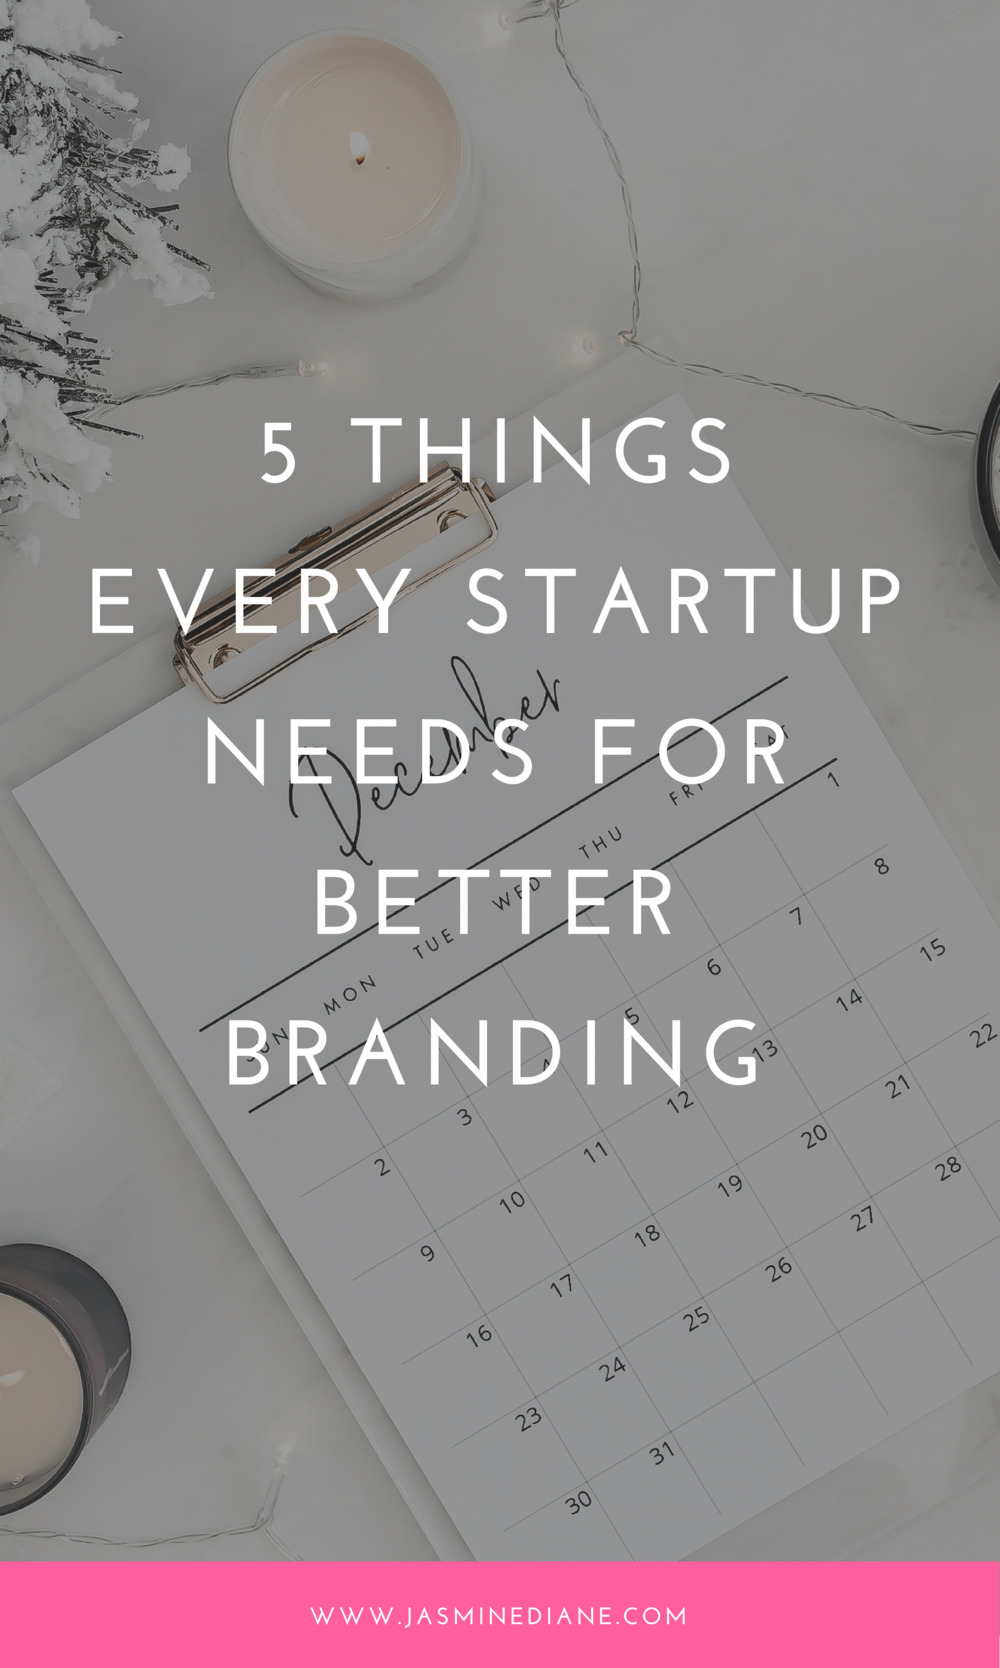 5 Things Every Startup Needs for Better Branding